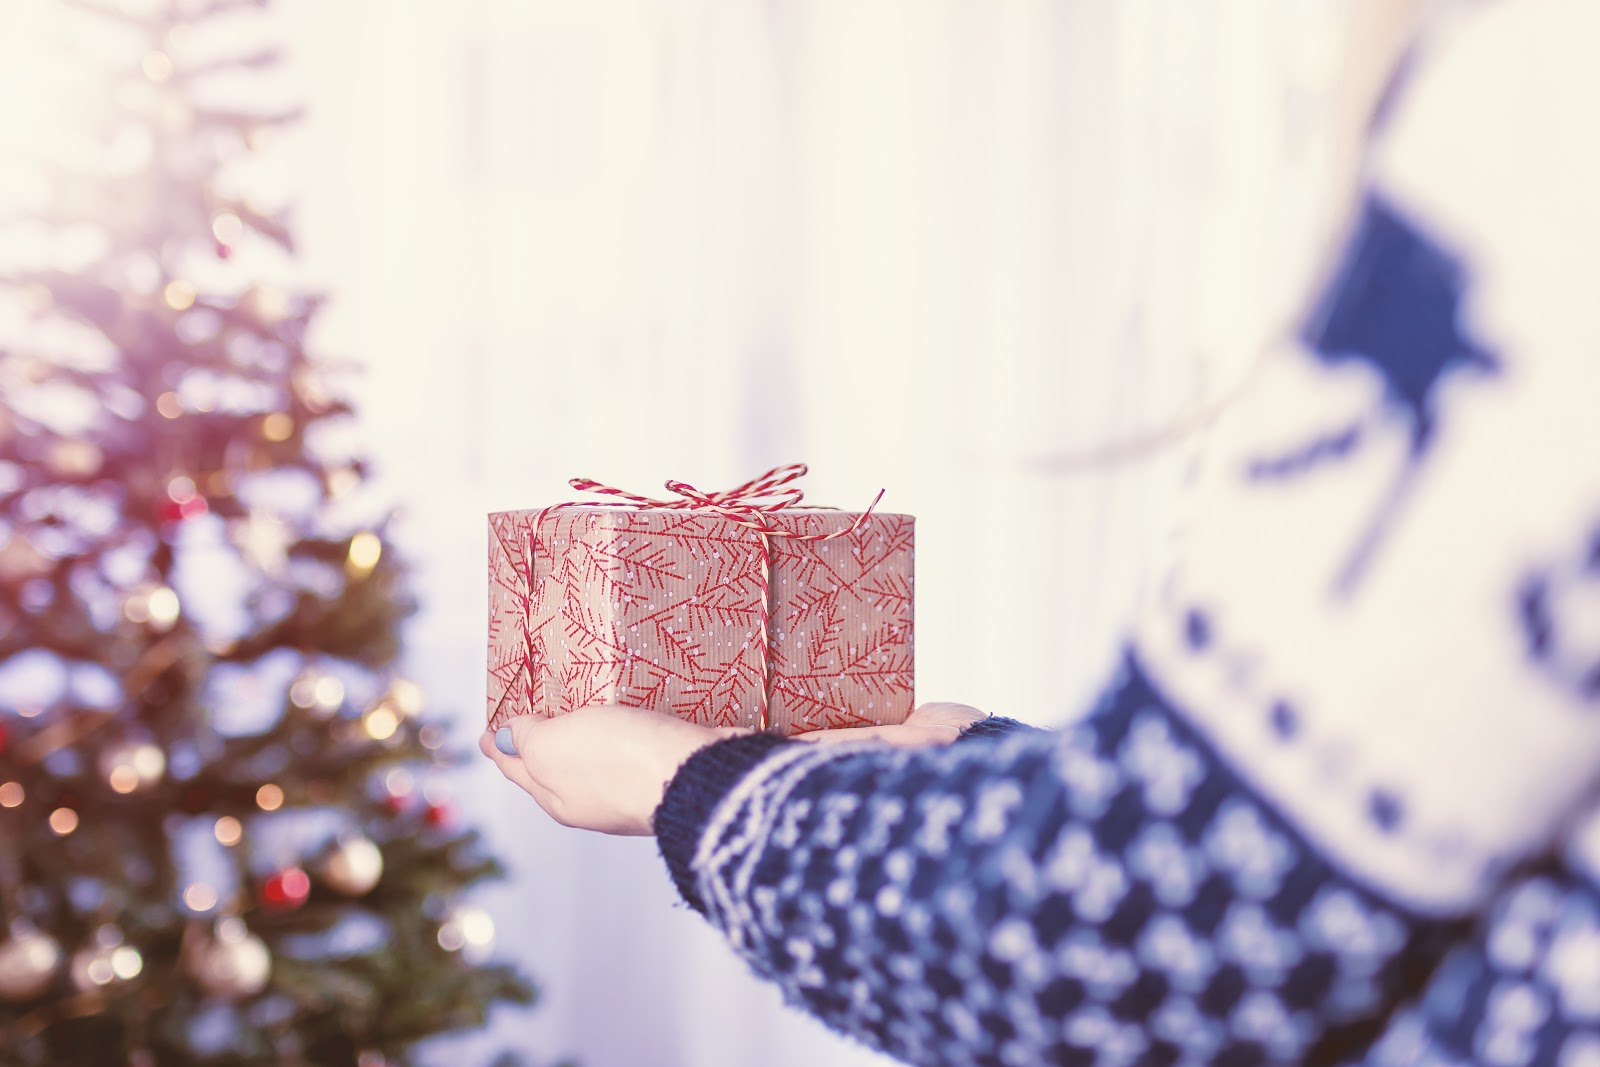 A person carrying a gift in outstretched hands toward a holiday tree.